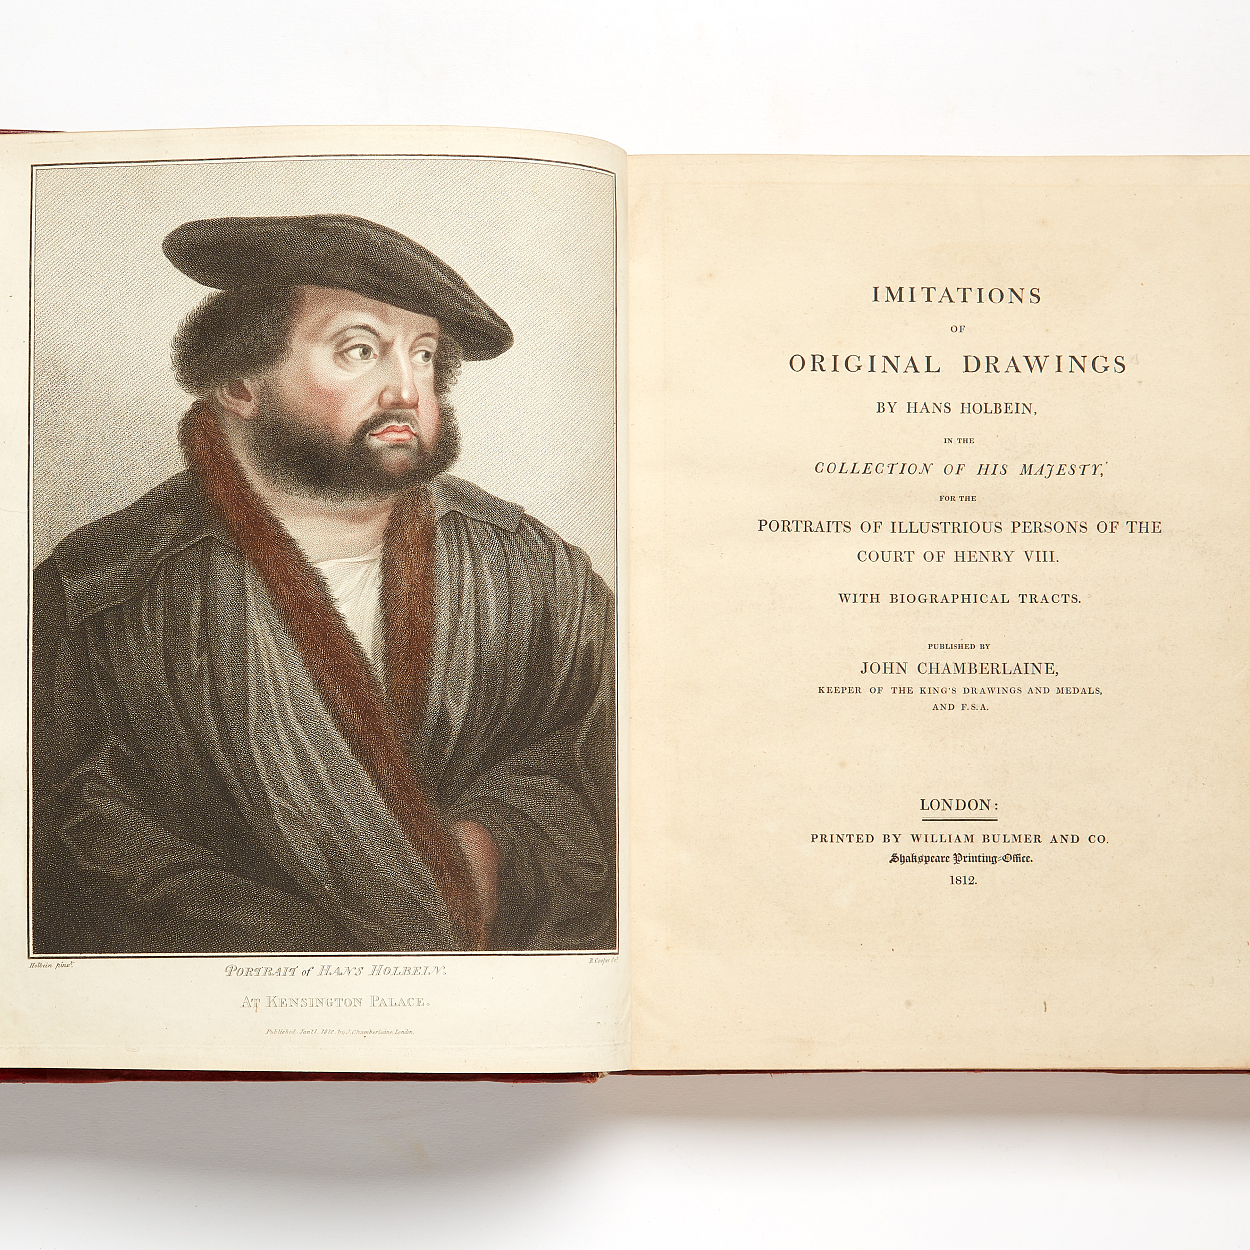 Chamberlain's Imitations of drawings by Holbein